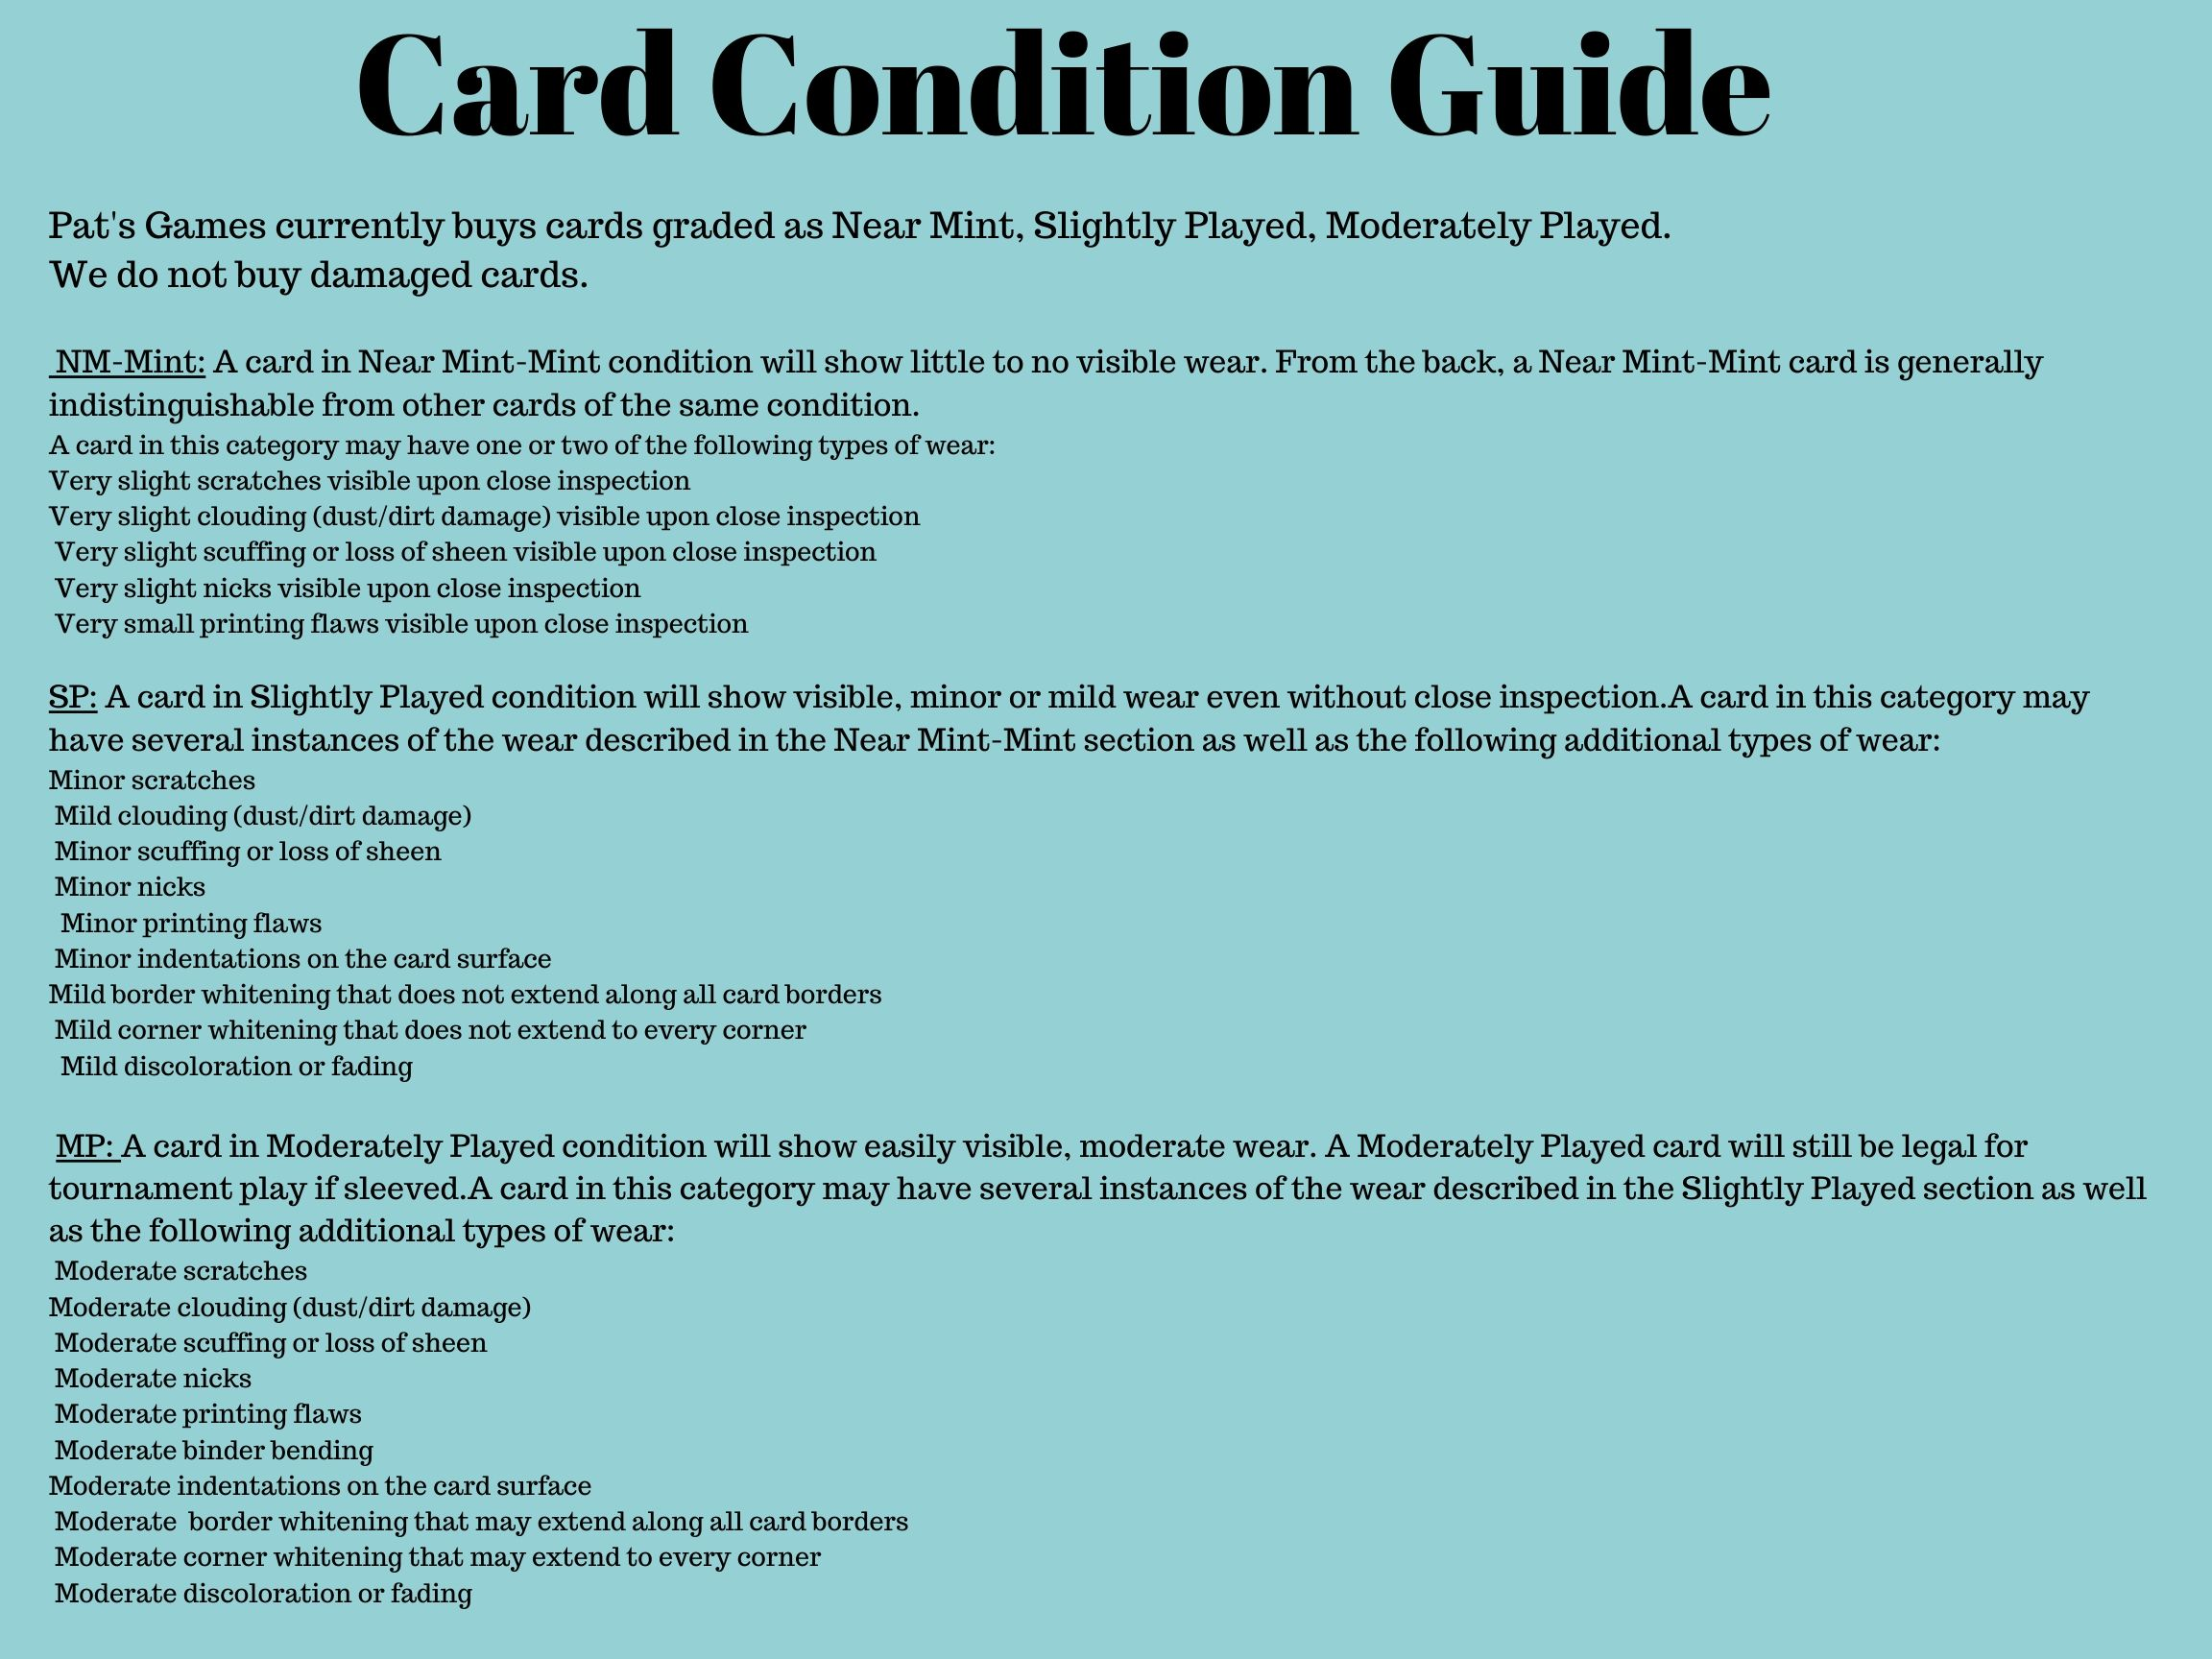 Card Condition Guide (1)